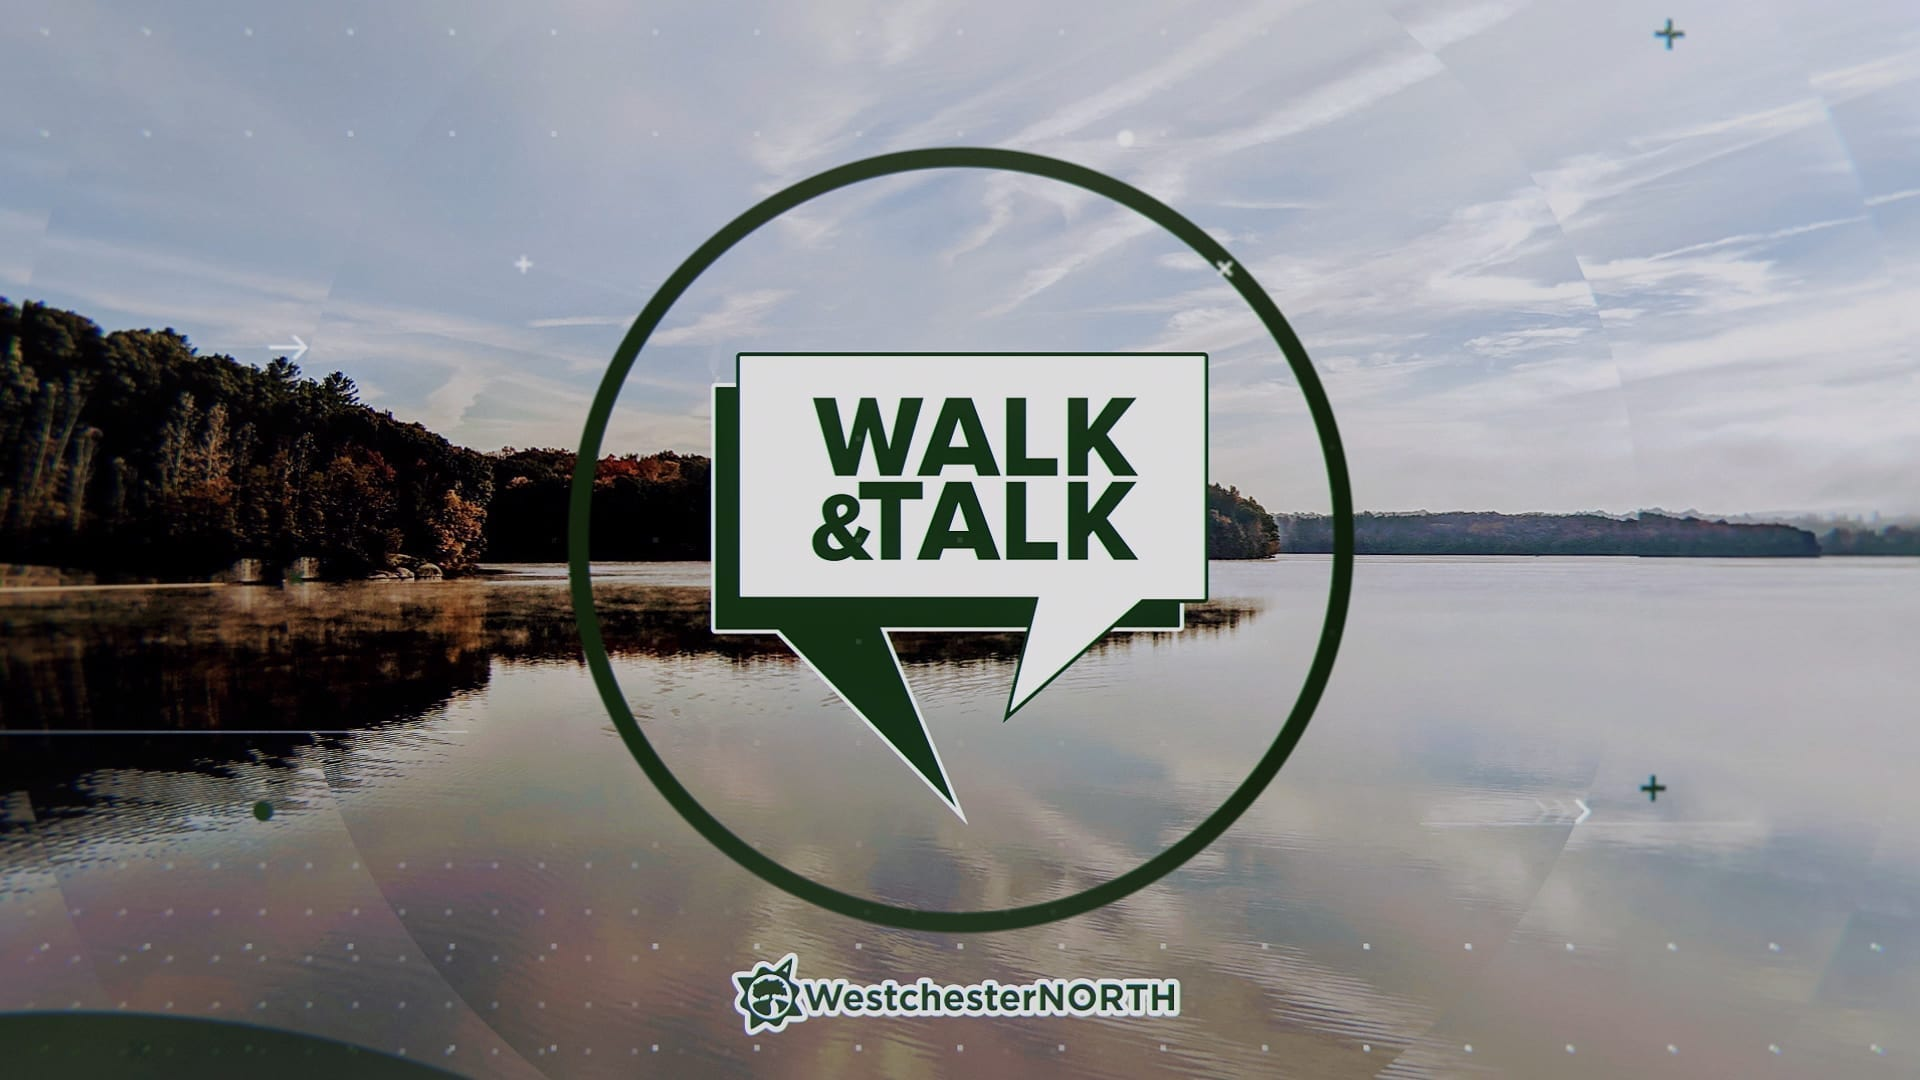 Walk & Talk Video Series on Westchester North